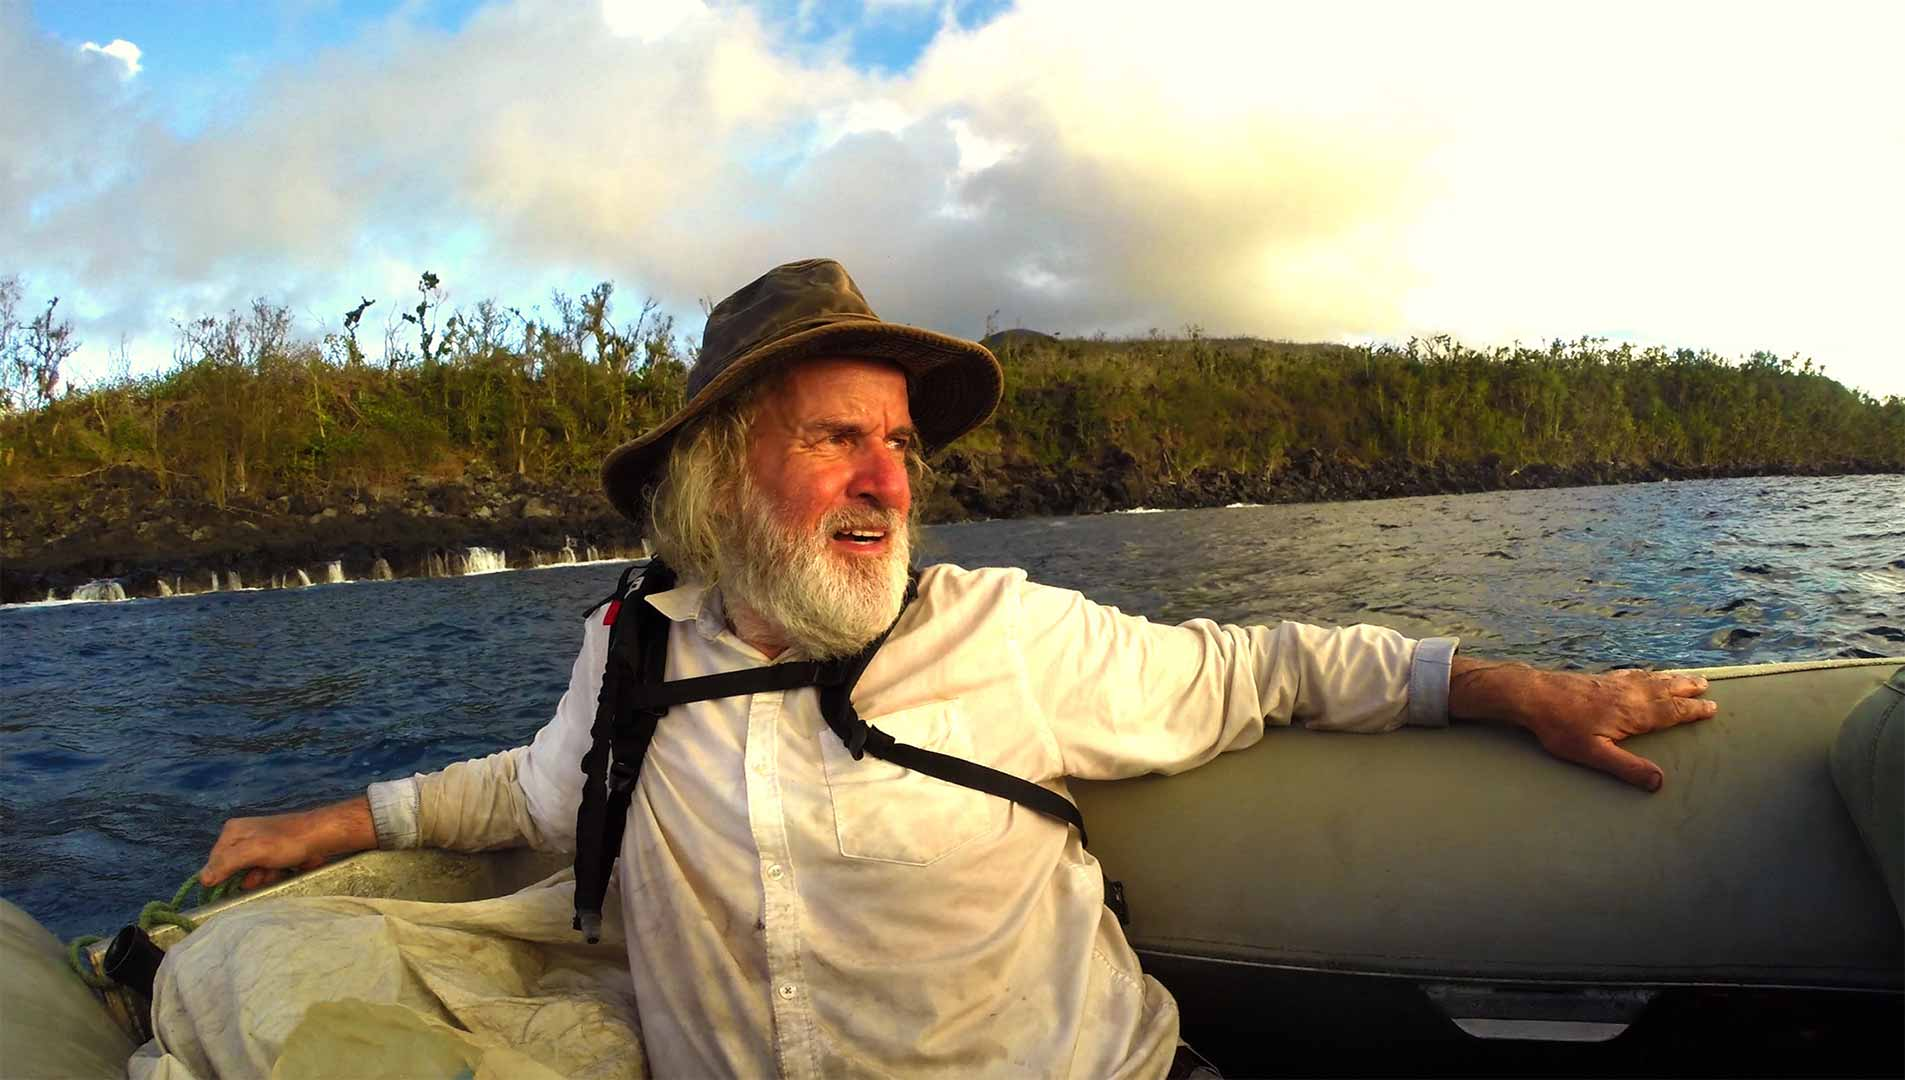 One of our castaways arriving to the desert islands that we have in Oceania